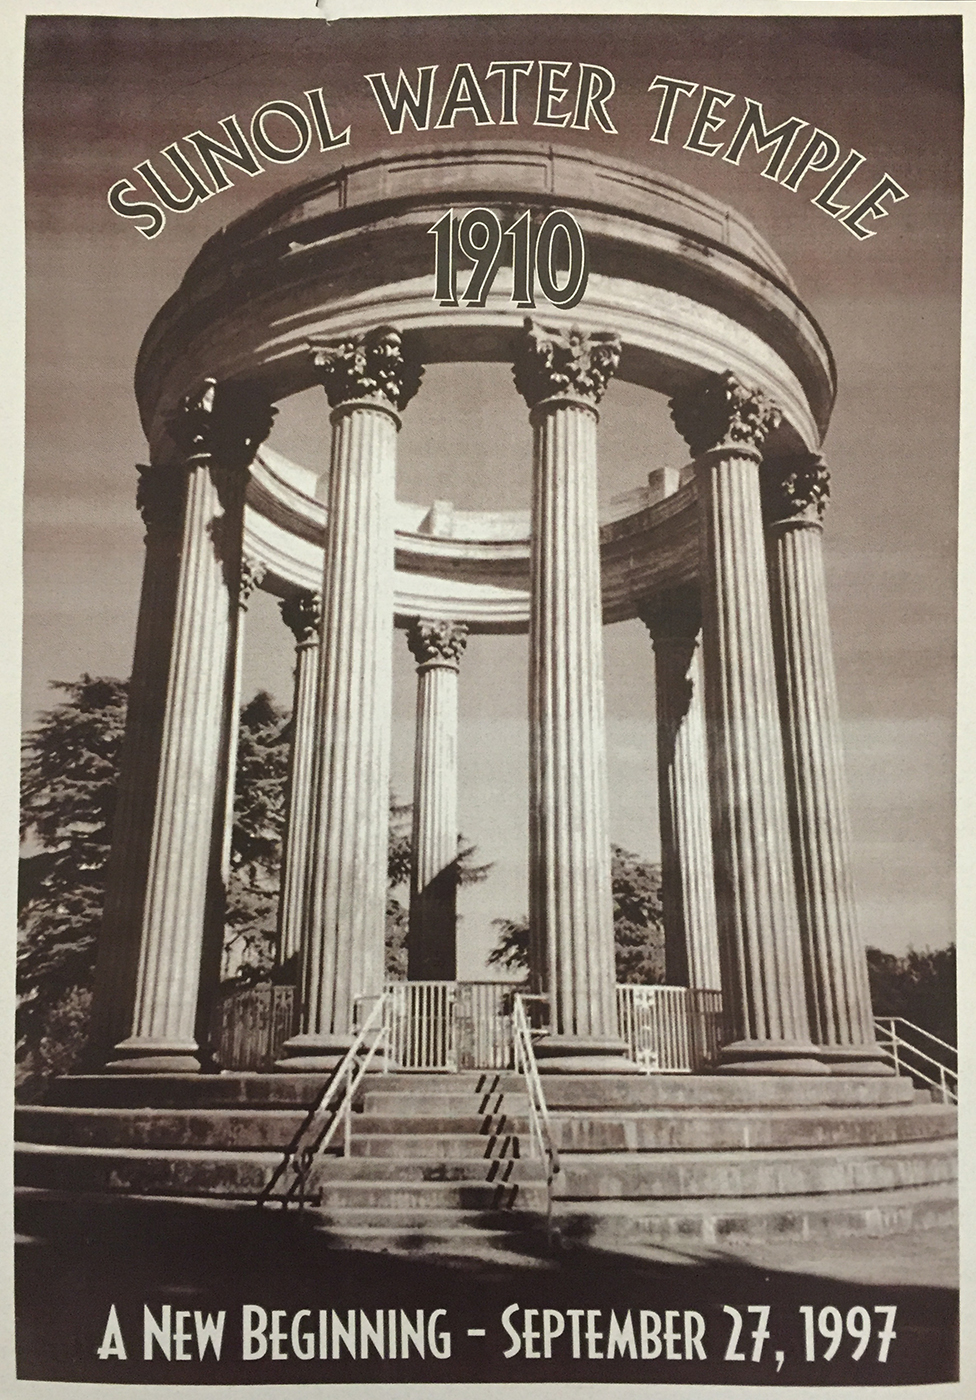 Sunol Water Temple poster